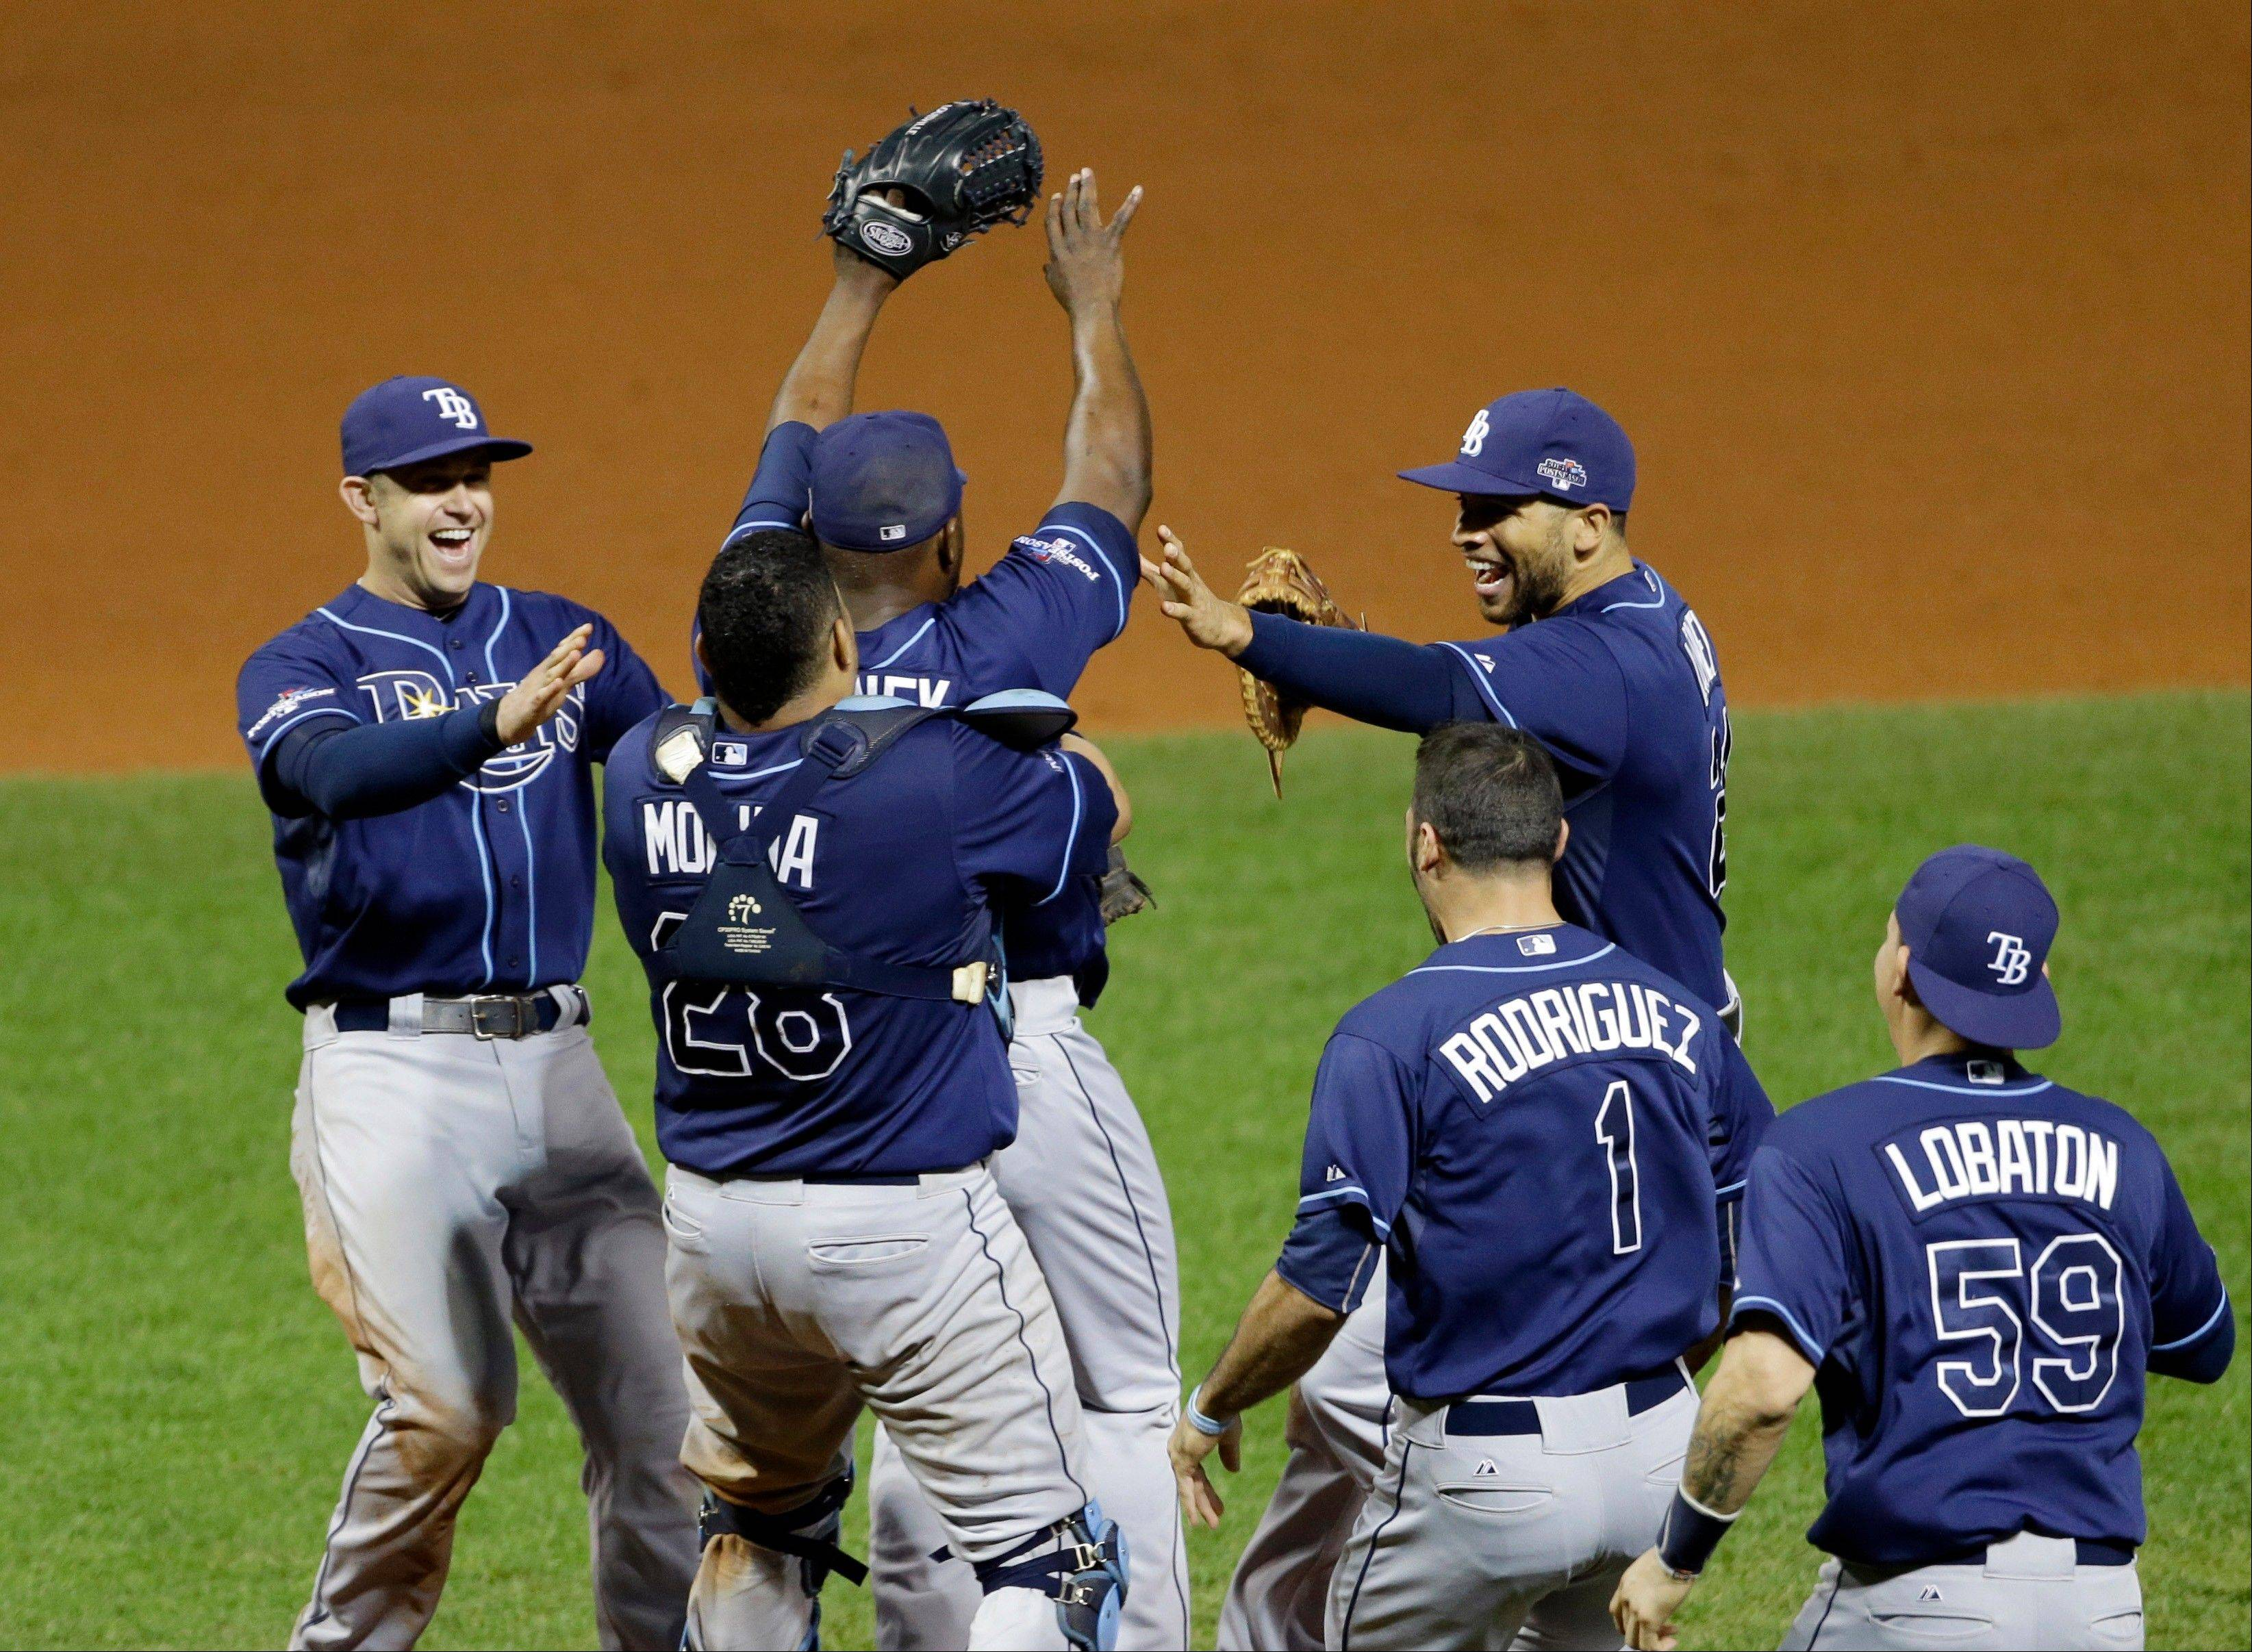 The Tampa Bay Rays celebrate after defeating the Cleveland Indians 4-0 in the AL wild-card baseball game Tuesday, Oct. 1, 2013, in Cleveland. The Rays move on to play the Boston Red Sox in the AL division series.